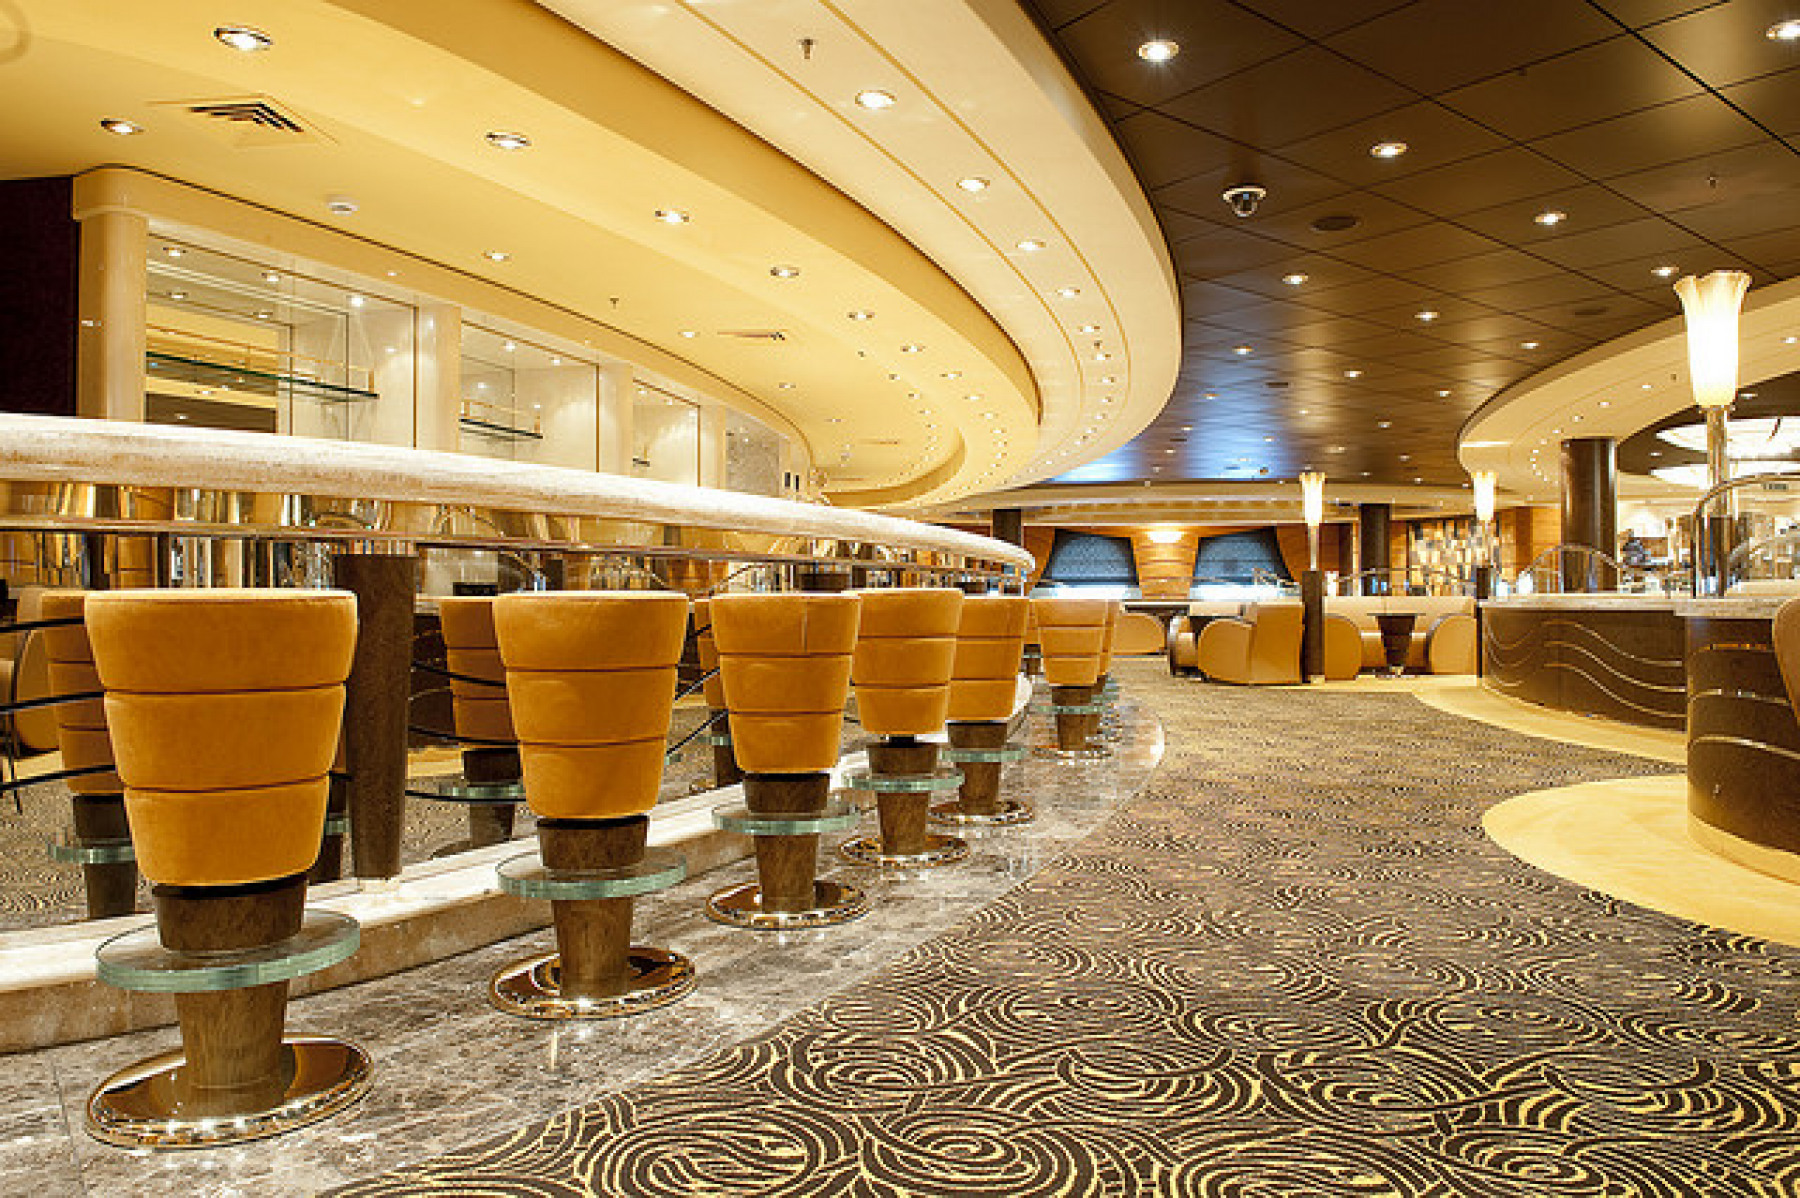 msc cruises musica class topiazo bar.jpg